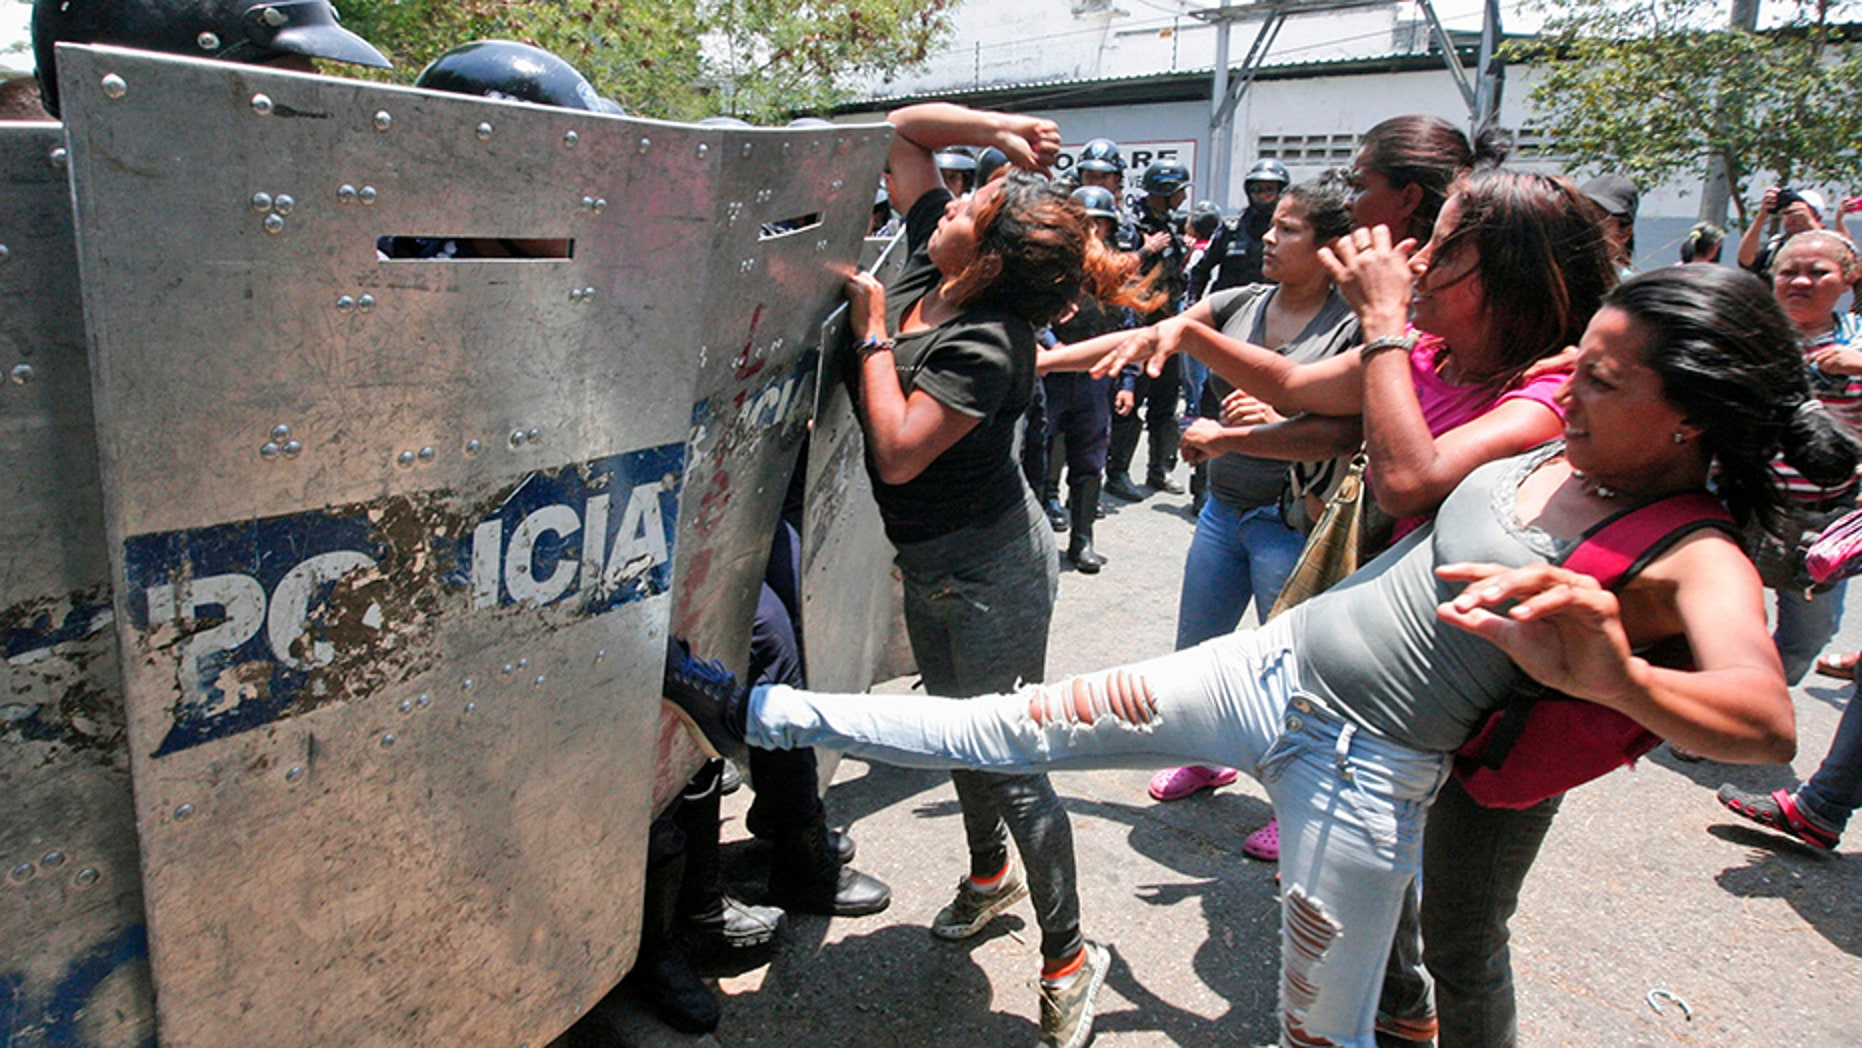 A woman kicks at a riot police shield as relatives of prisoners wait to hear news about their family members imprisoned at a police station where a riot broke out, in Valencia, Venezuela.